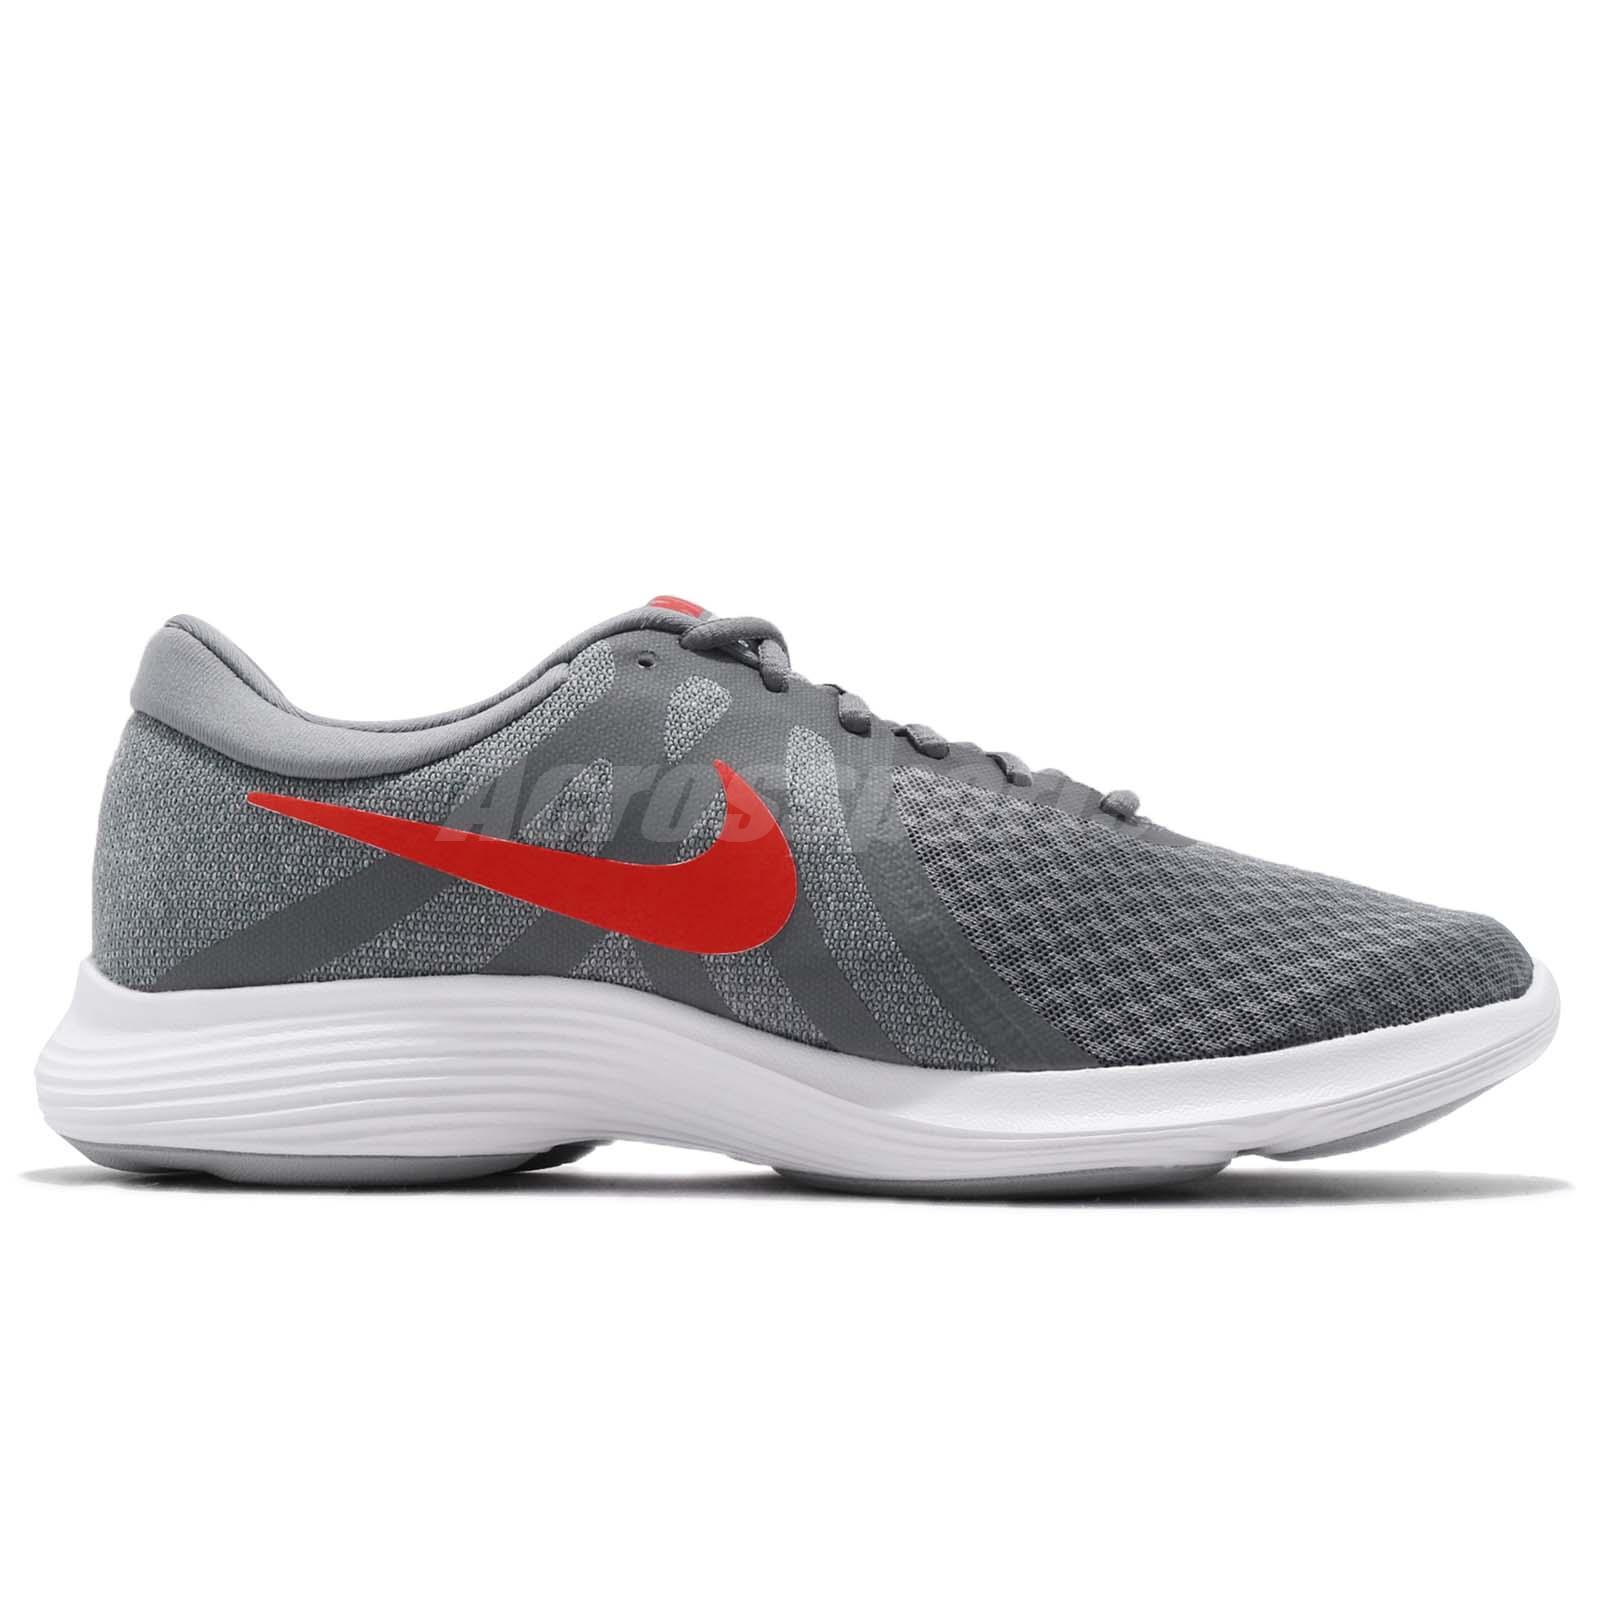 55a2b1d7c76d Nike Revolution 4 IV Grey Red White Men Running Shoes Sneakers ...